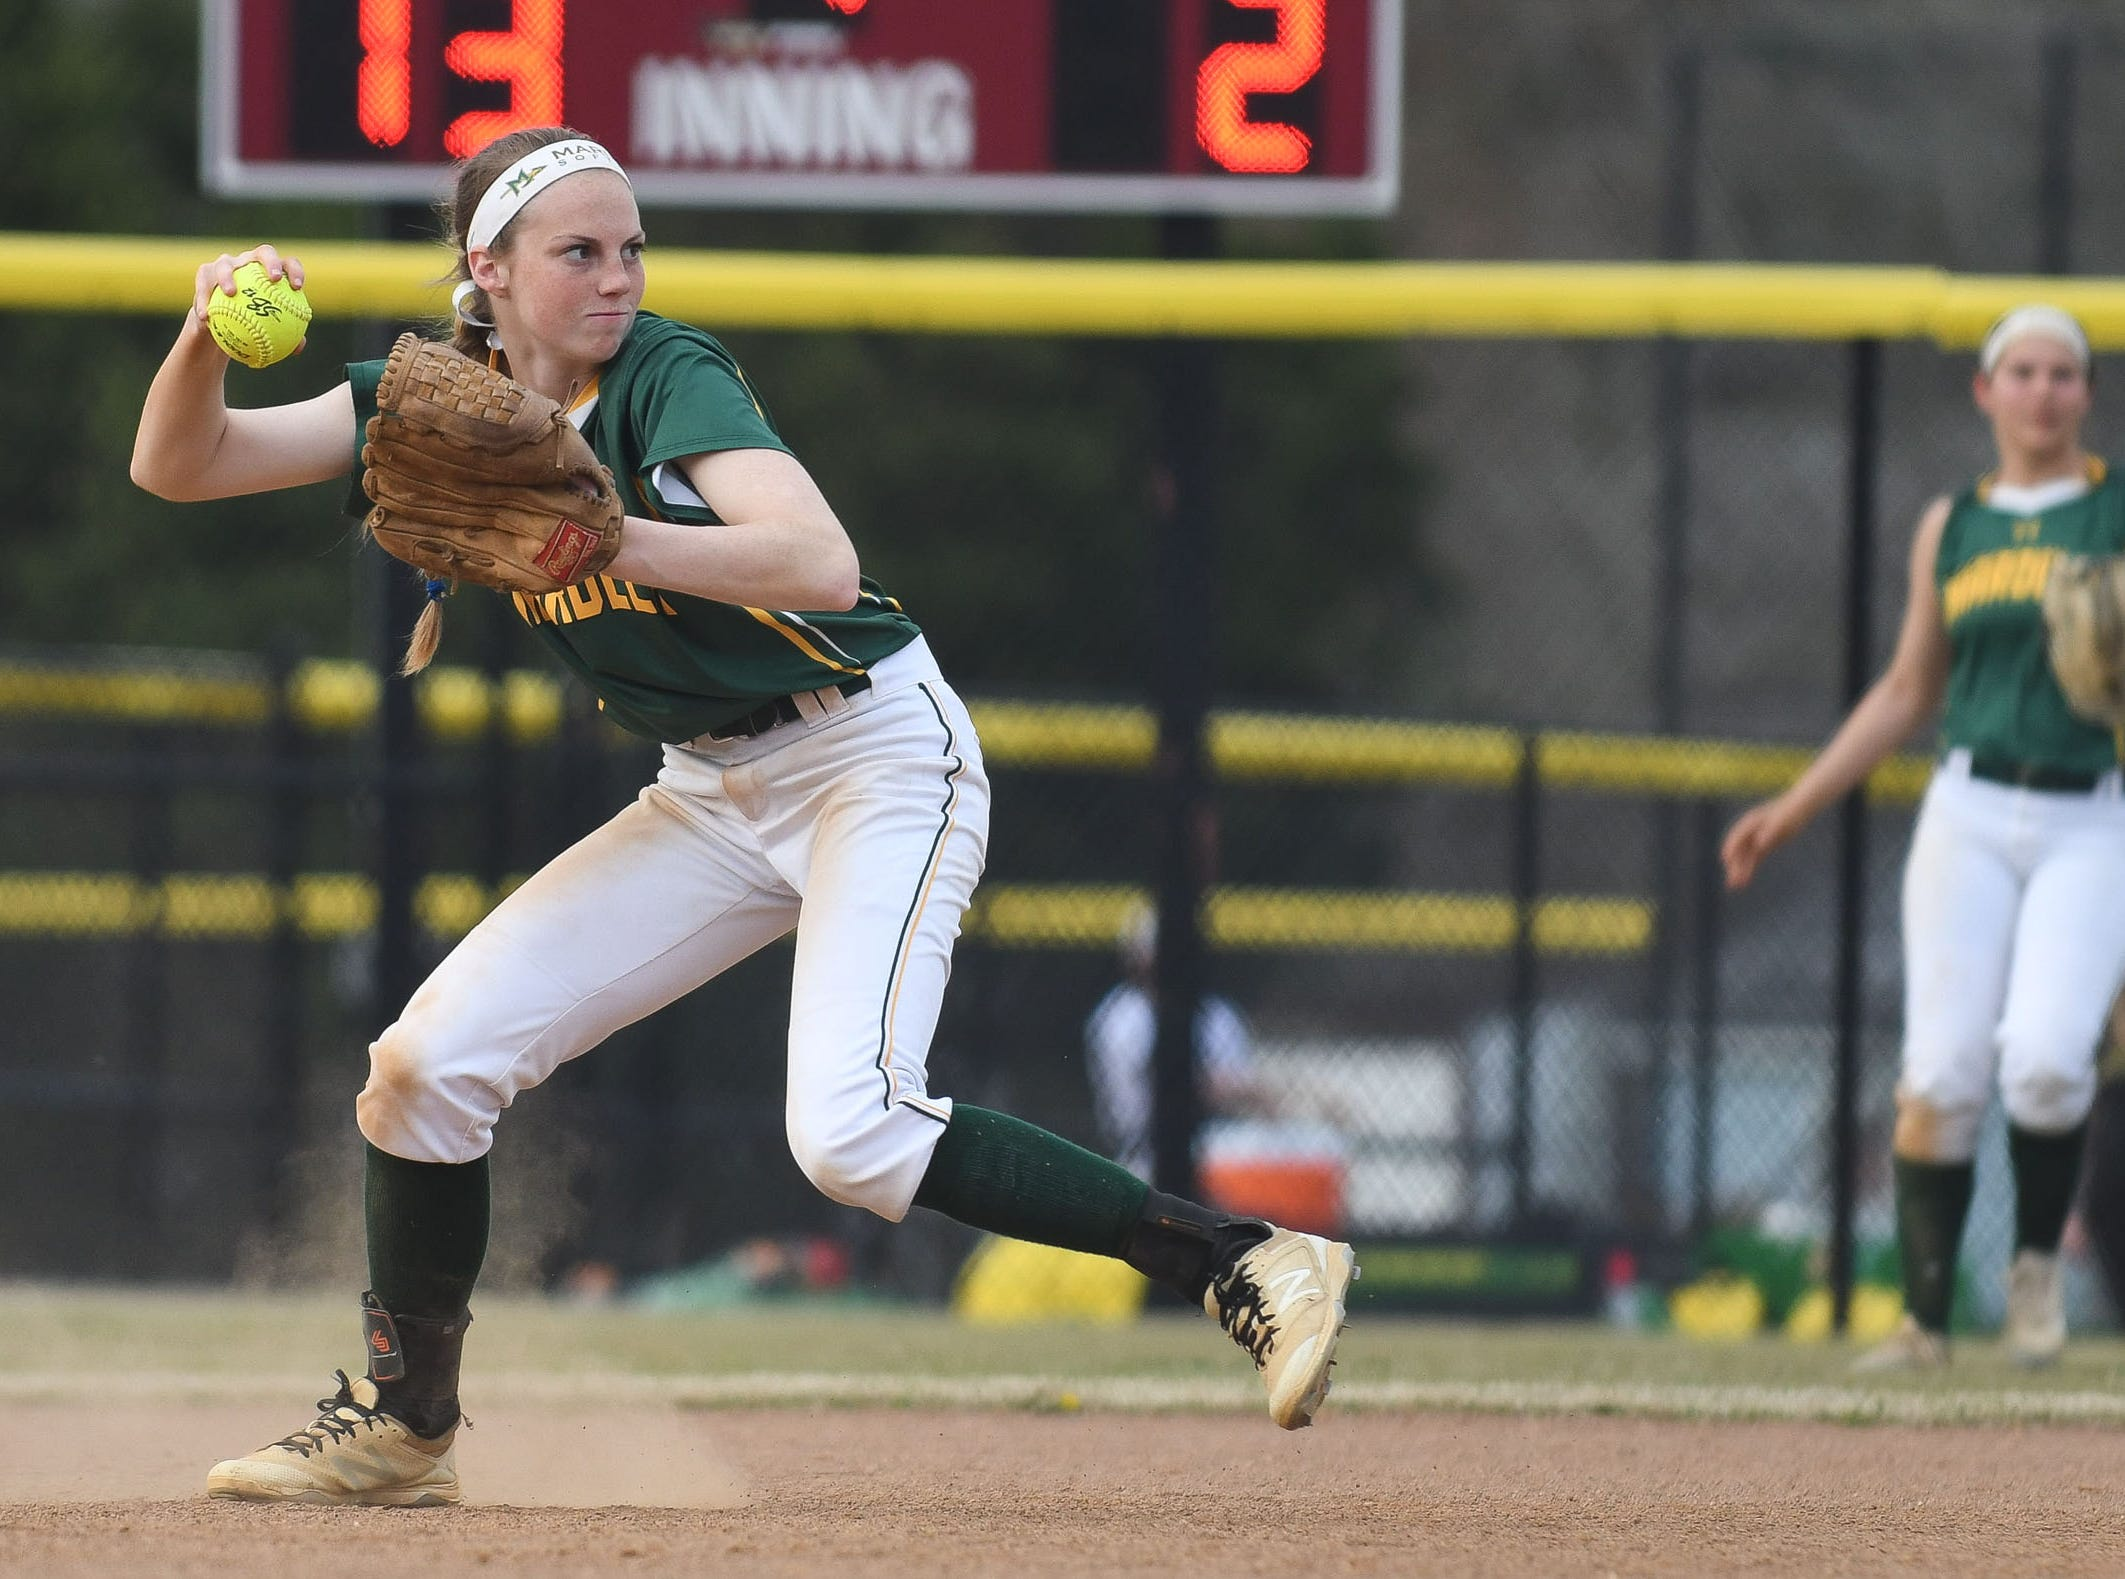 Mardela's Alexa Jones with the throw to first against Snow Hill on Monday, April 8, 2019 in Snow Hill, Md.